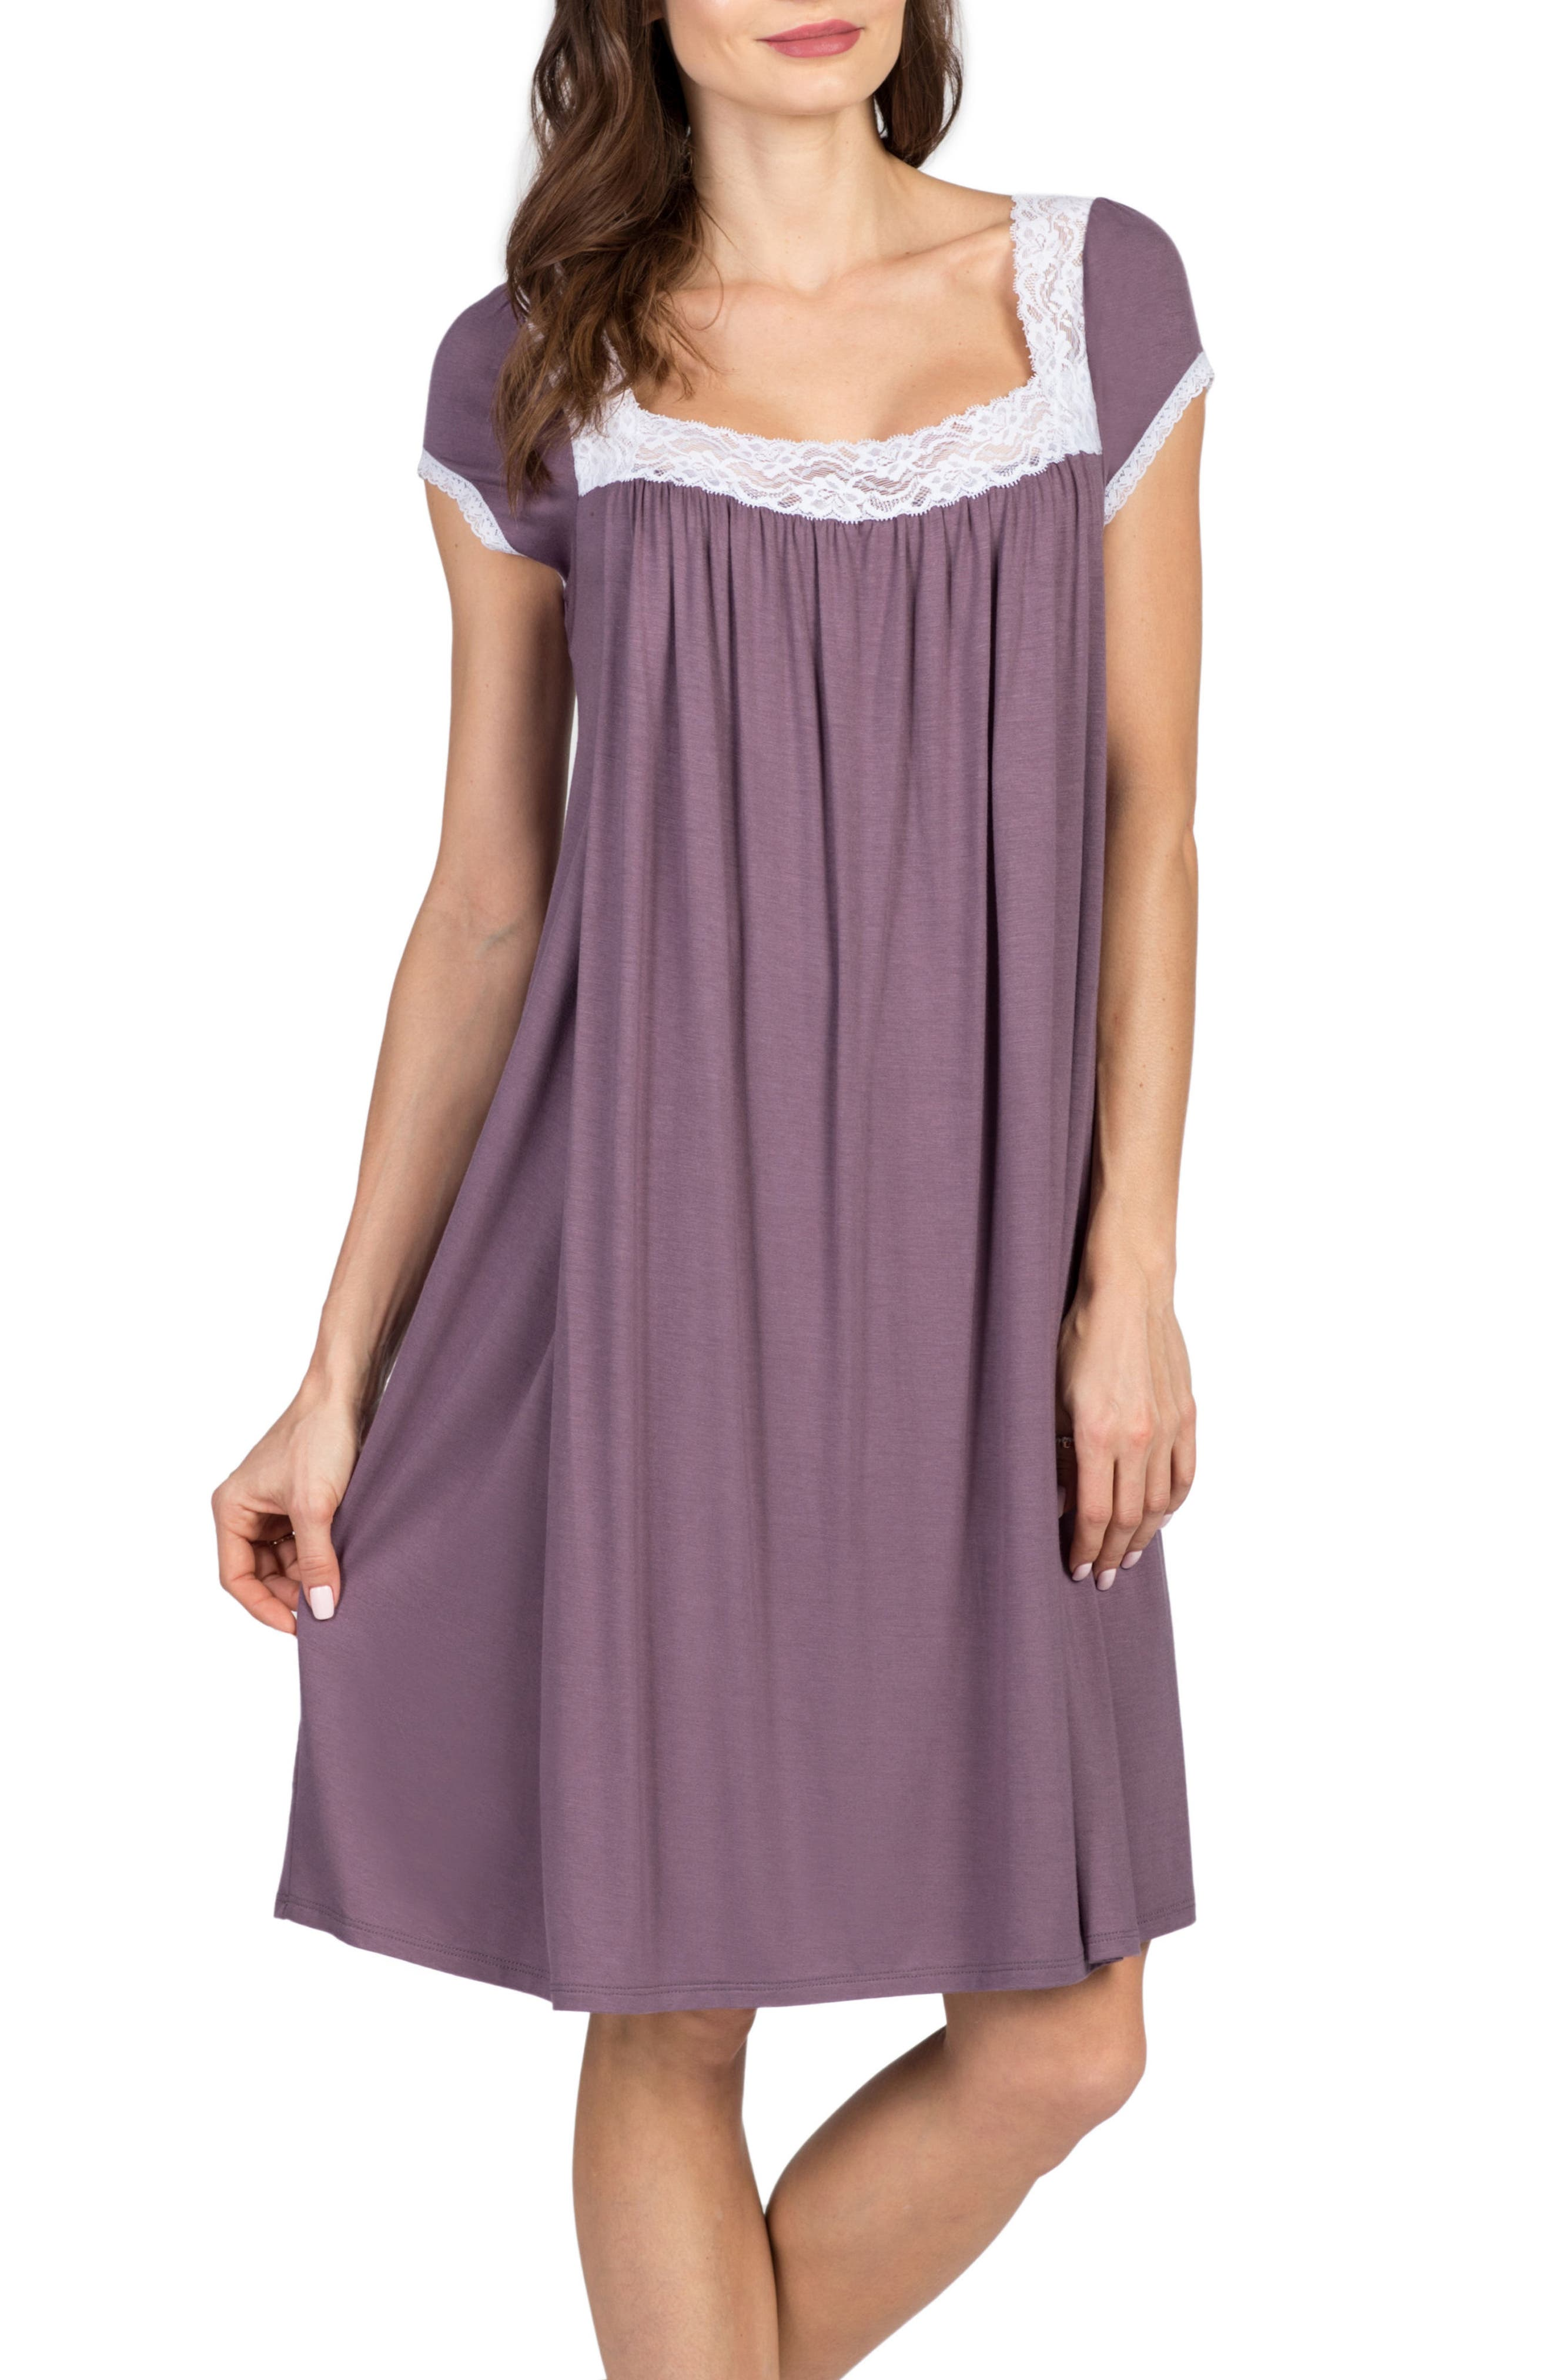 Joliet Maternity/Nursing Nightgown,                             Alternate thumbnail 3, color,                             Lilac